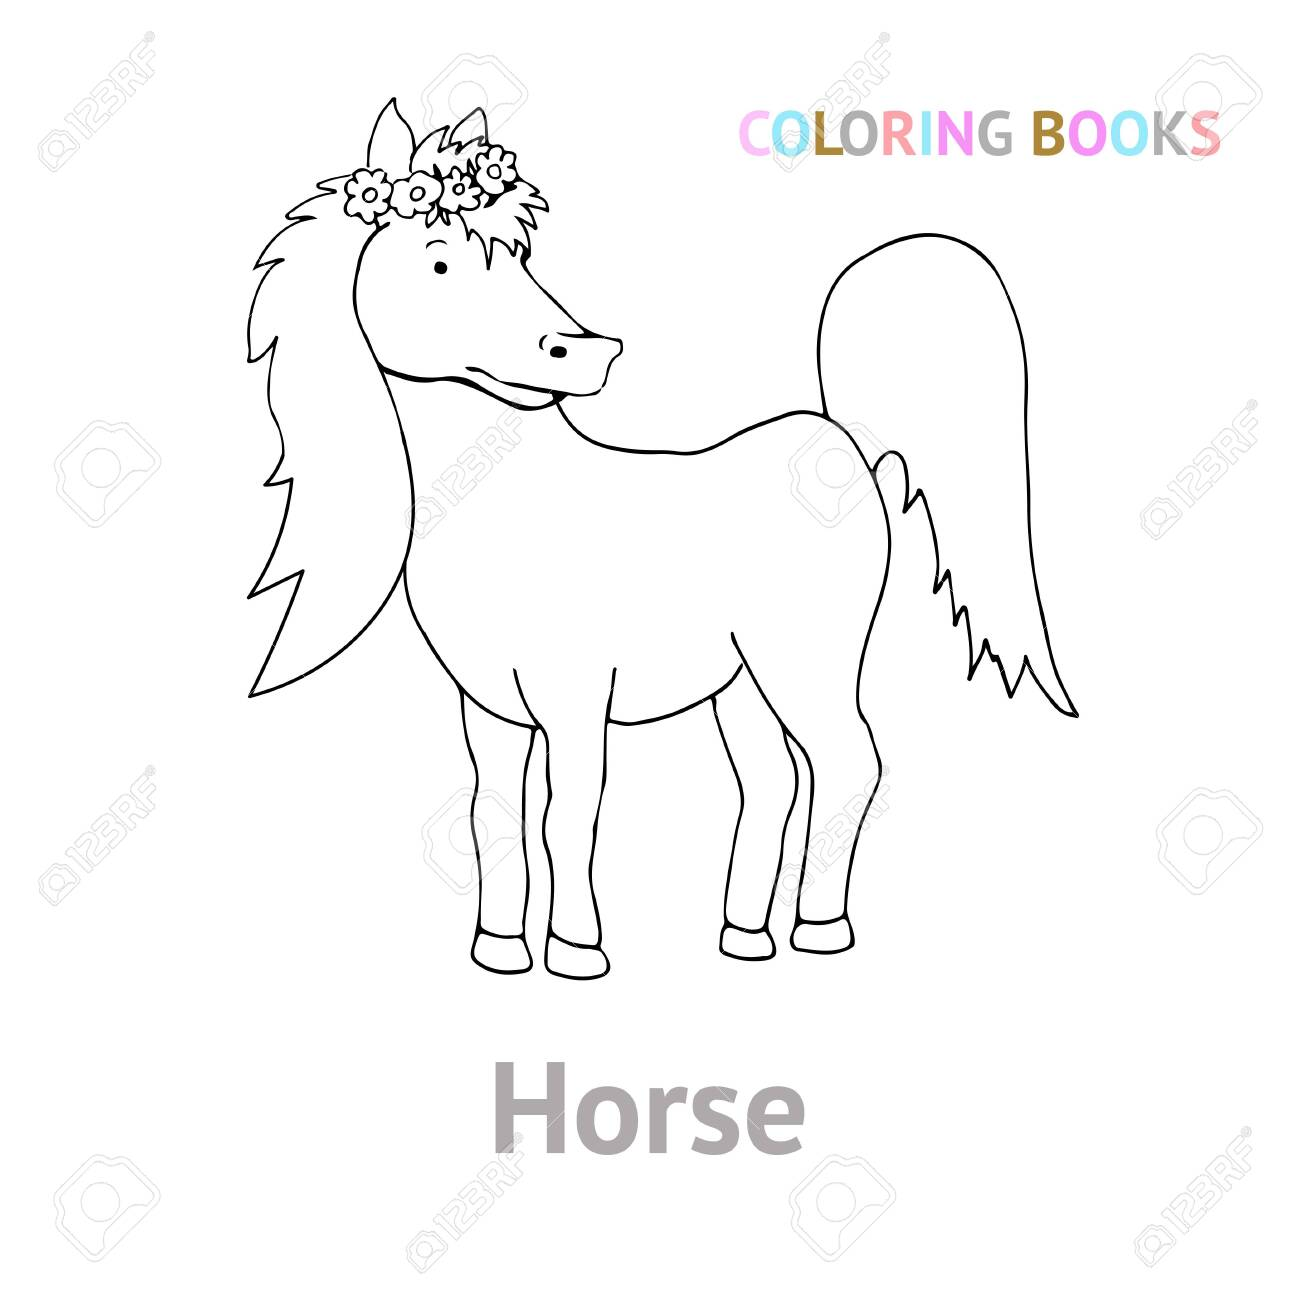 The Pet Is A Horse Cute Illustration In Doodle Style Black Royalty Free Cliparts Vectors And Stock Illustration Image 144872112